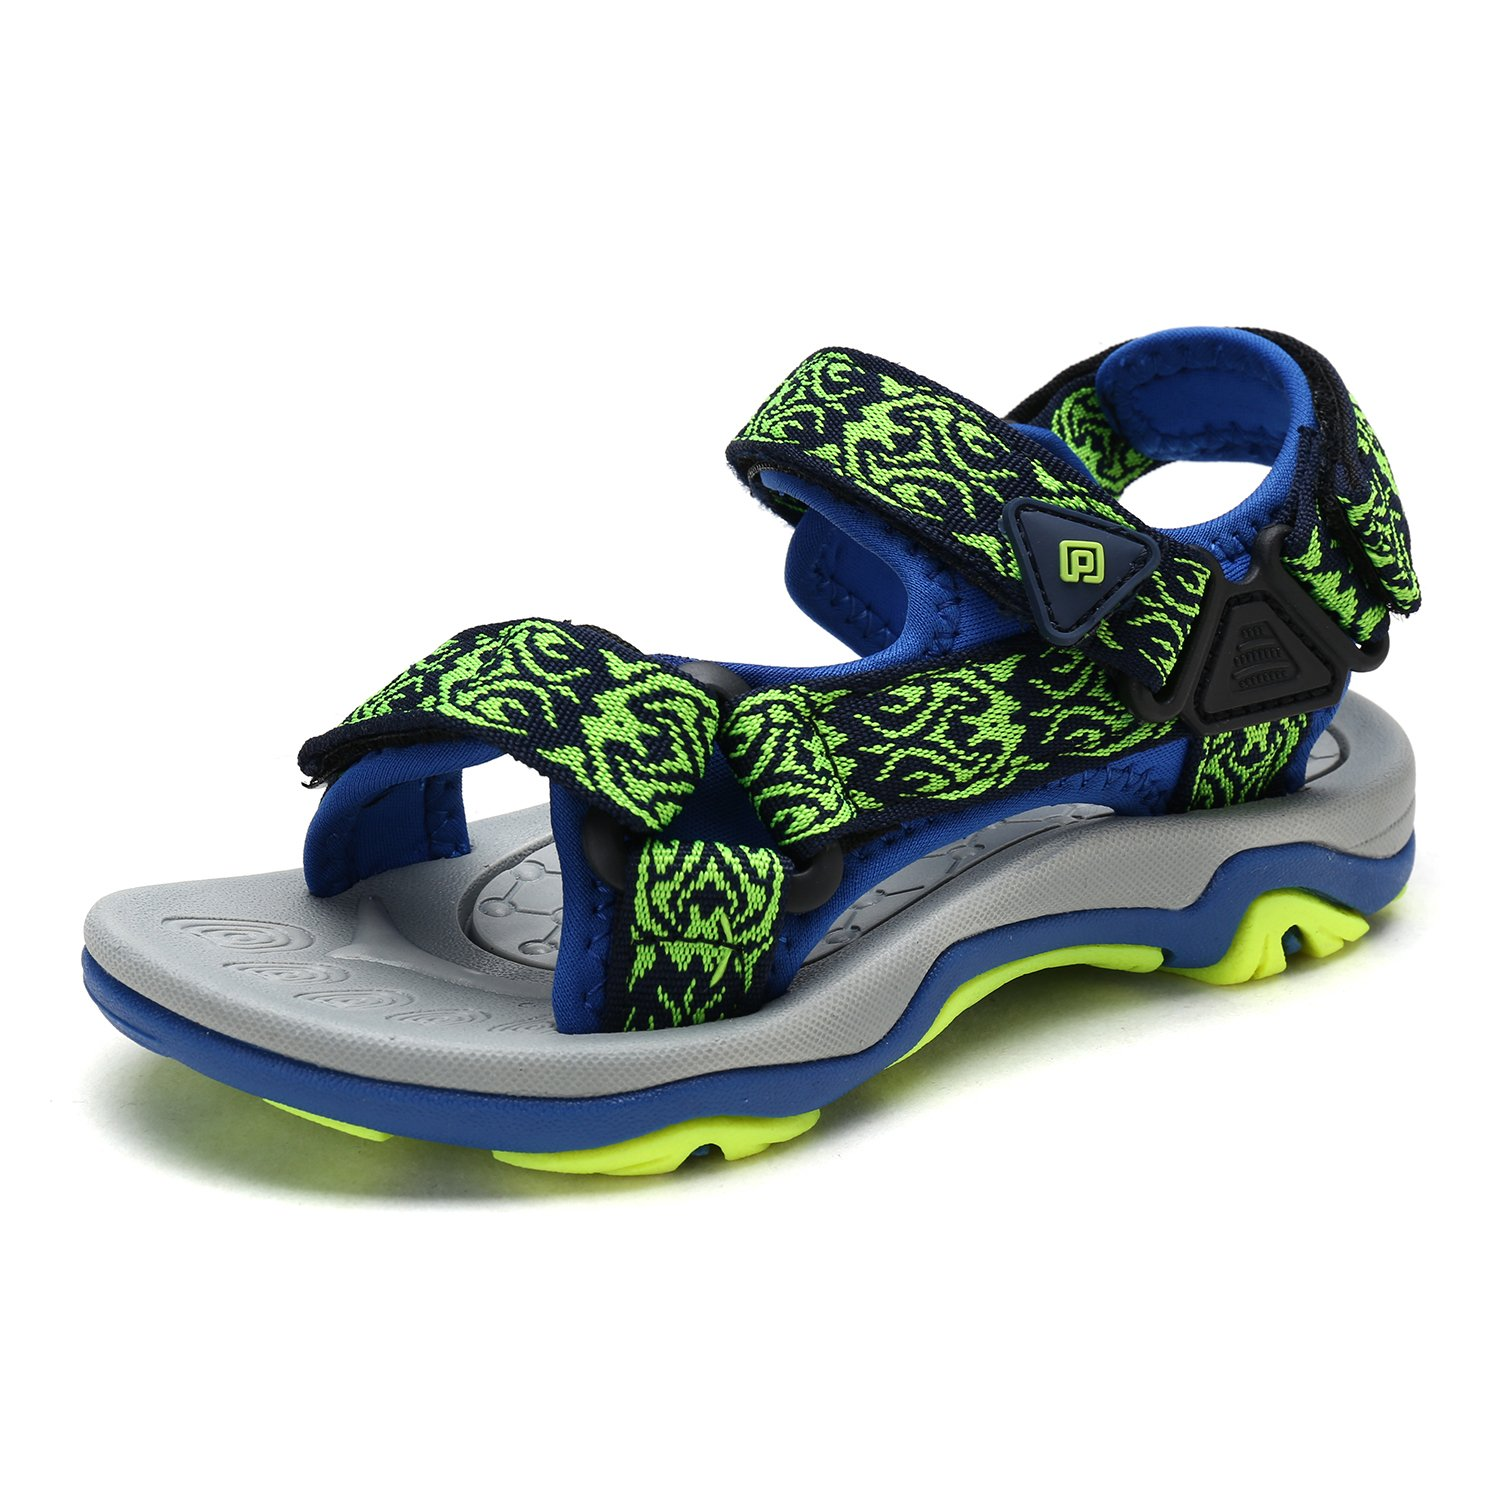 DREAM PAIRS Little Kid 170892-K Royal NEON Green Outdoor Summer Sandals Size 3 M US Little Kid